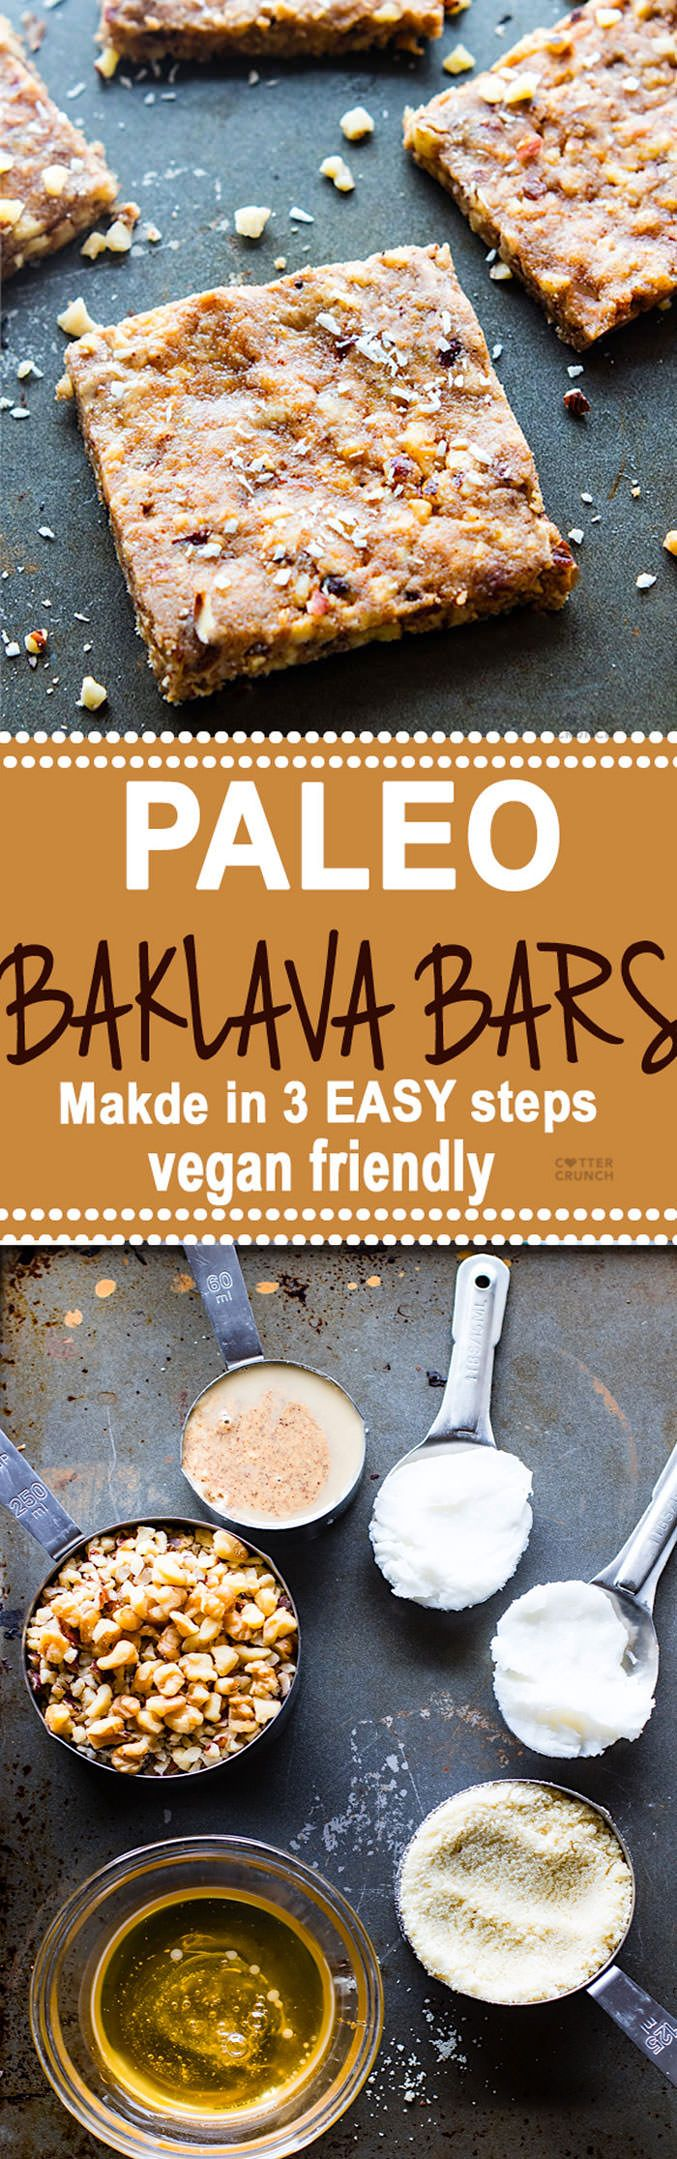 "Super easy 3 Step Paleo ""Baklava"" Bars! healthy vegan friendly bars that are packed full of sweet nutty flavor and healthy fats. Lower in carbs, sugar, and great for snacking. @cottercrunch"